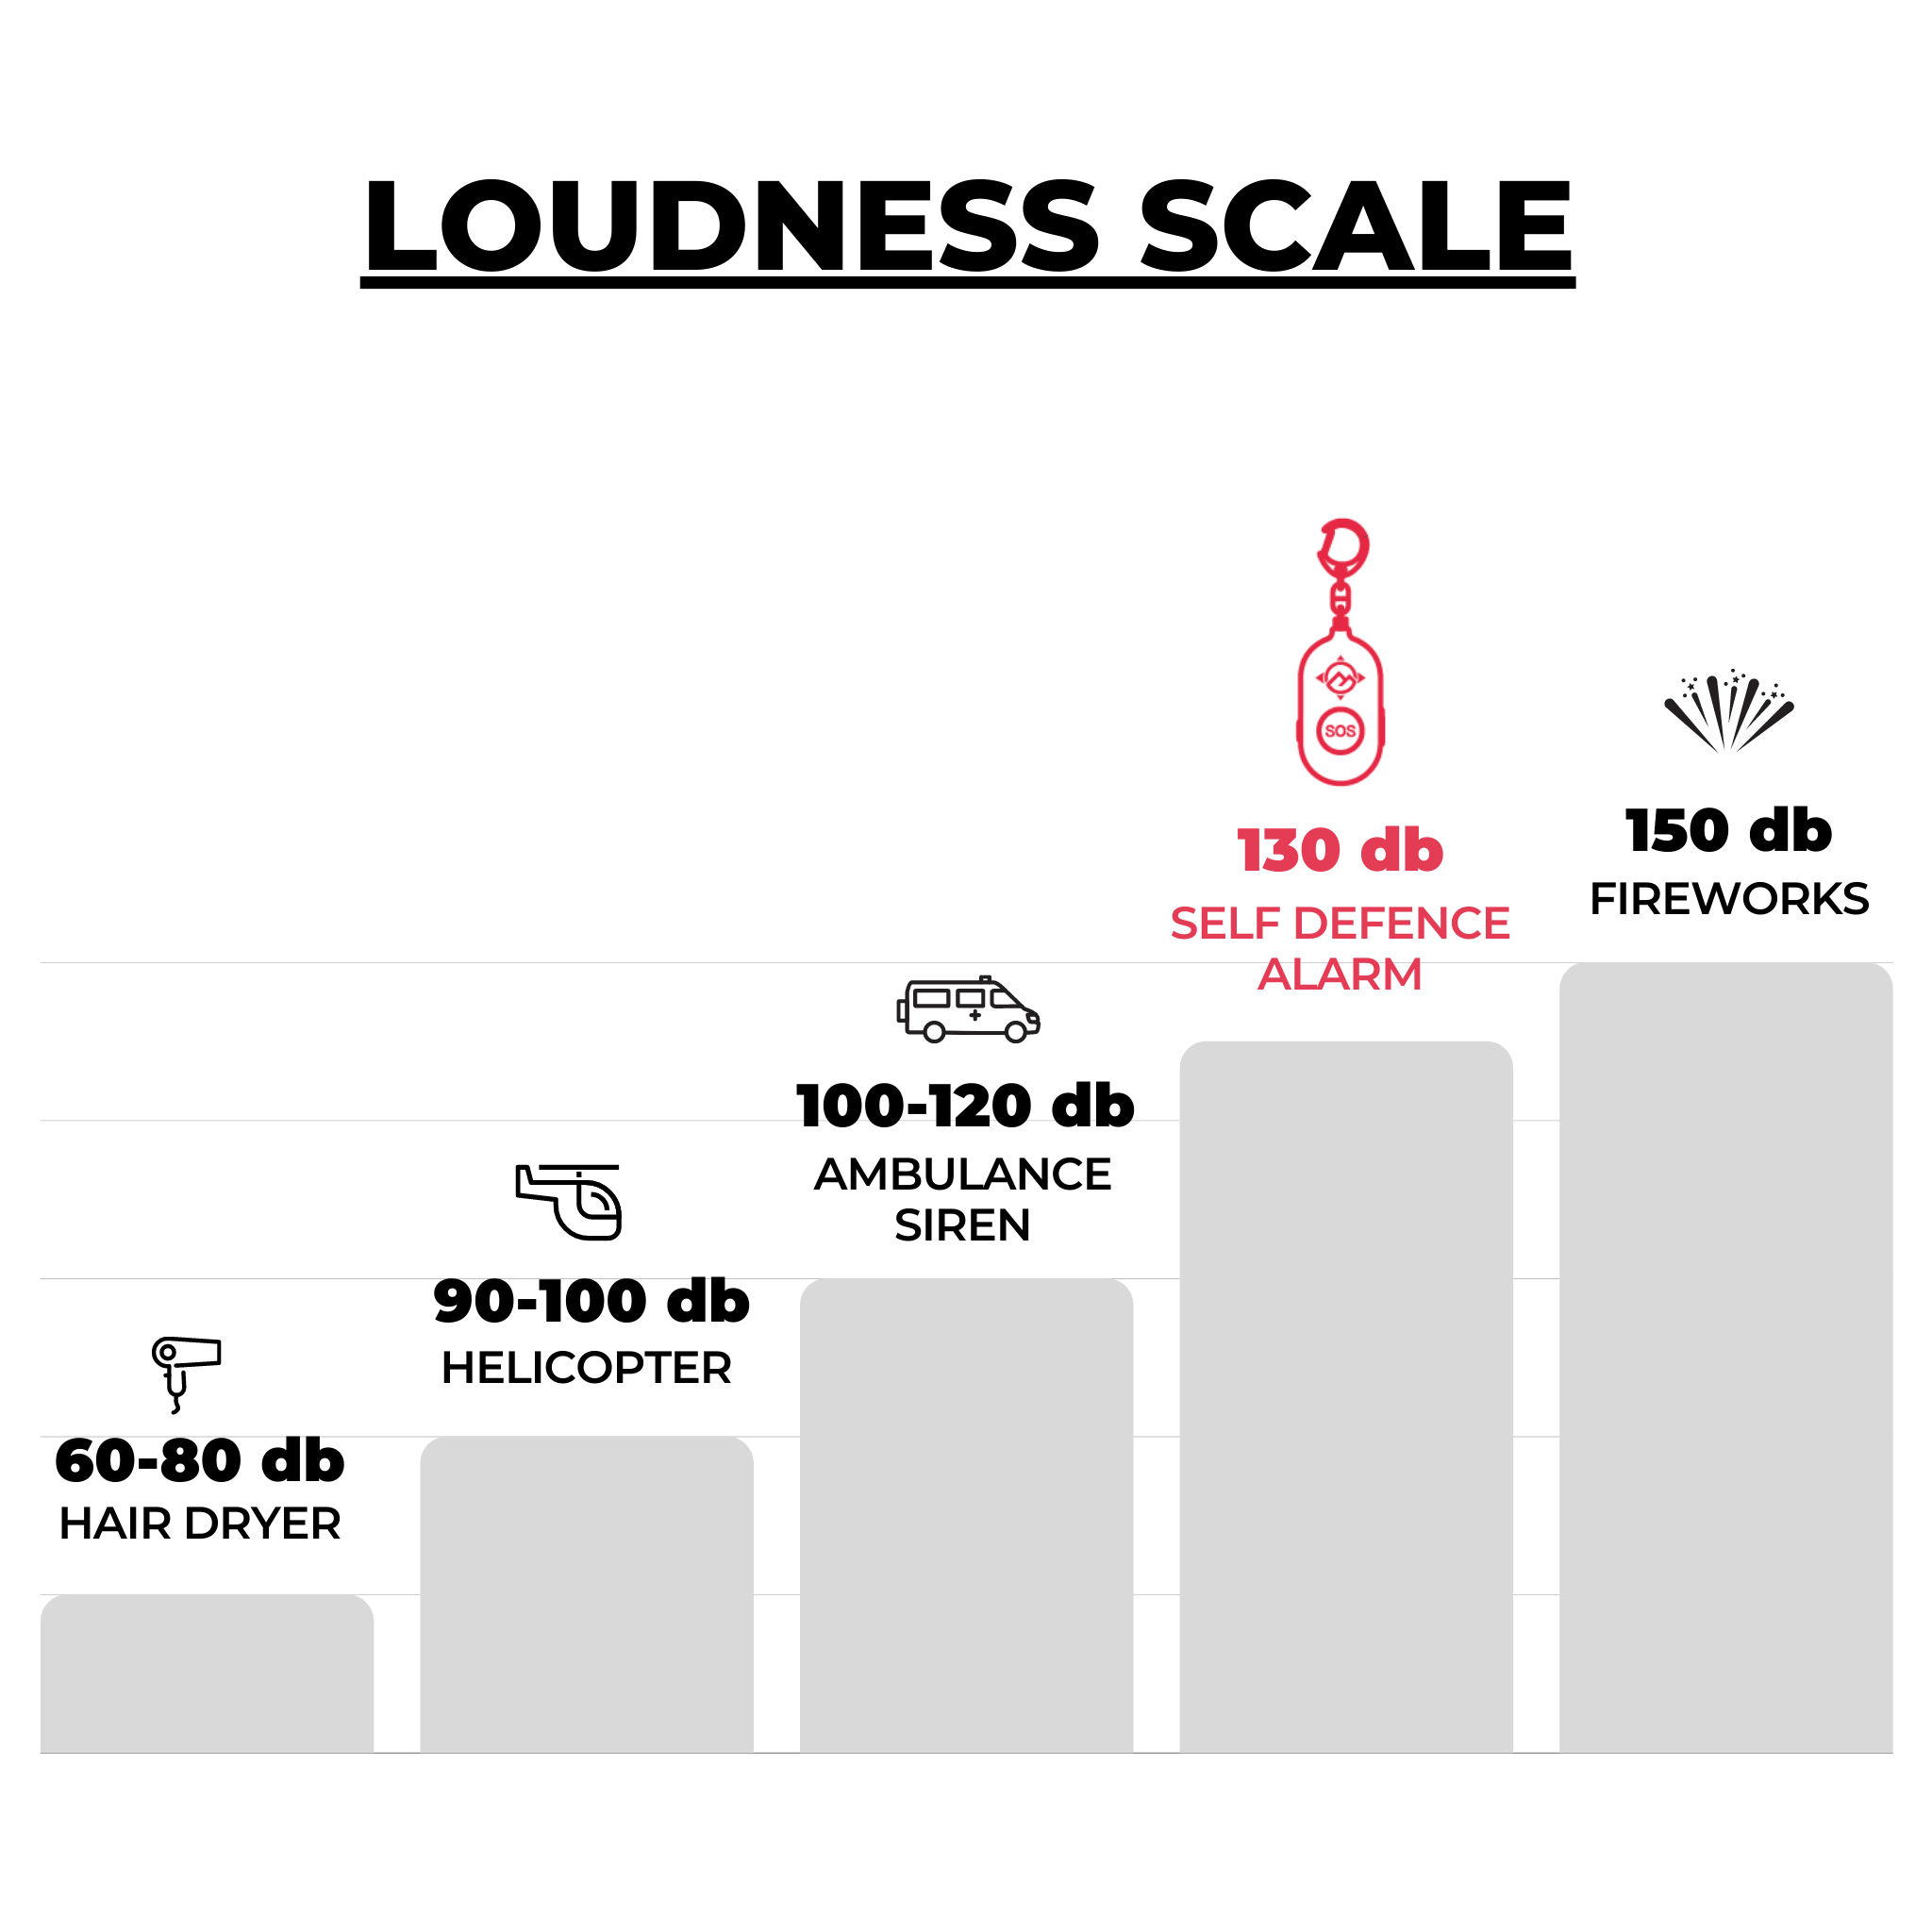 Loudness Scale showing how loud the 130 decibel loud Self Defence Alarm compares to other loud noises